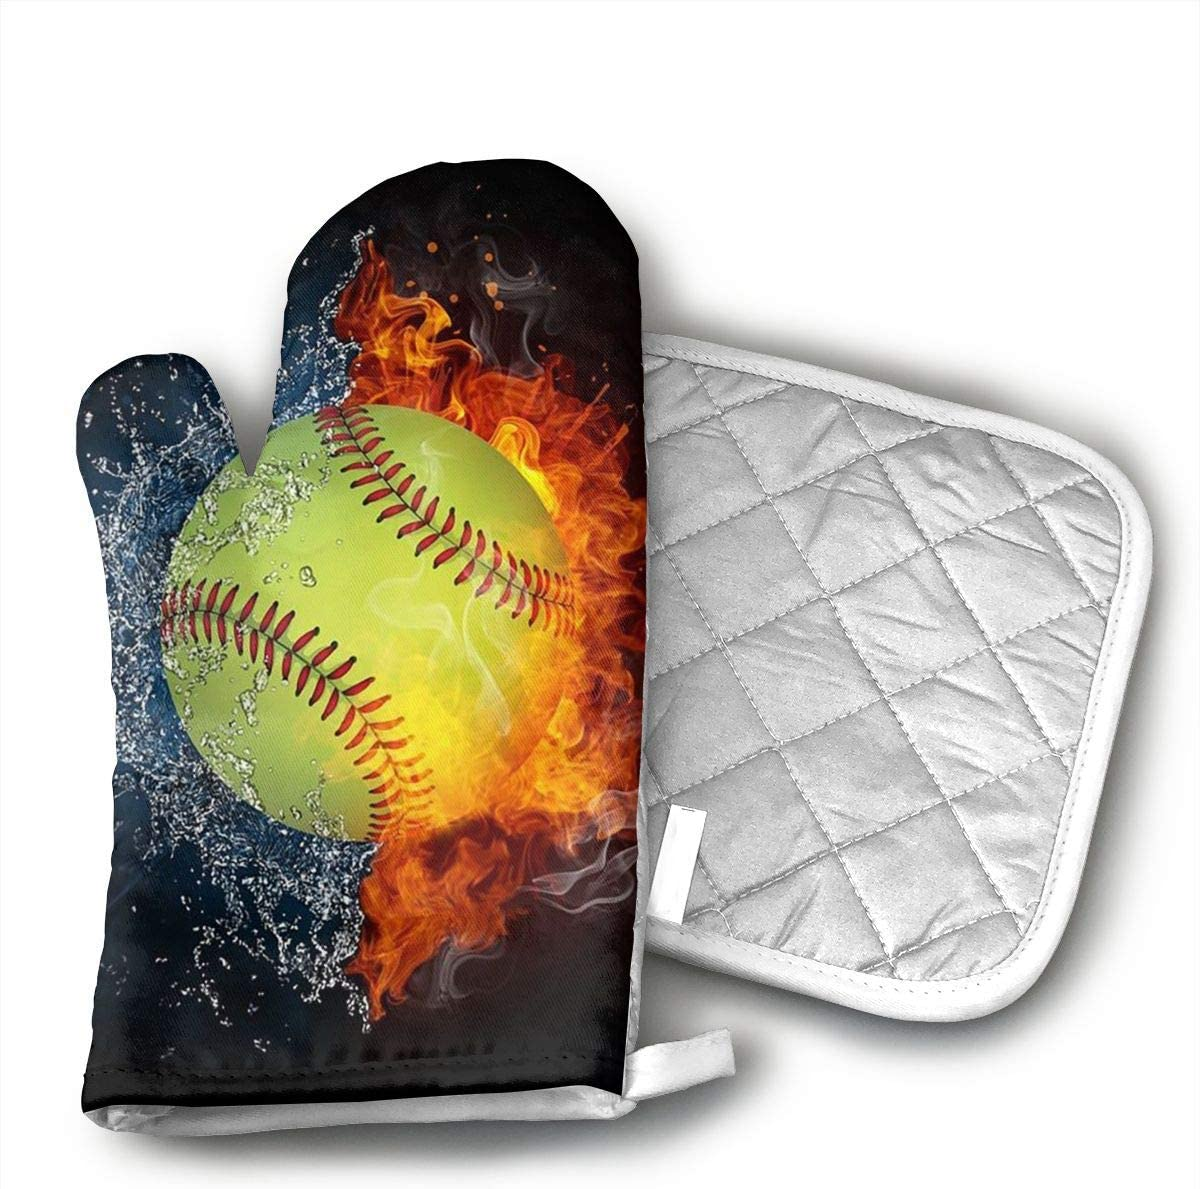 TMVFPYR Baseball On Fire Oven Mitts, Non-Slip Silicone Oven Mitts, Extra Long Kitchen Mitts, Heat Resistant to 500Fahrenheit Degrees Kitchen Oven Gloves